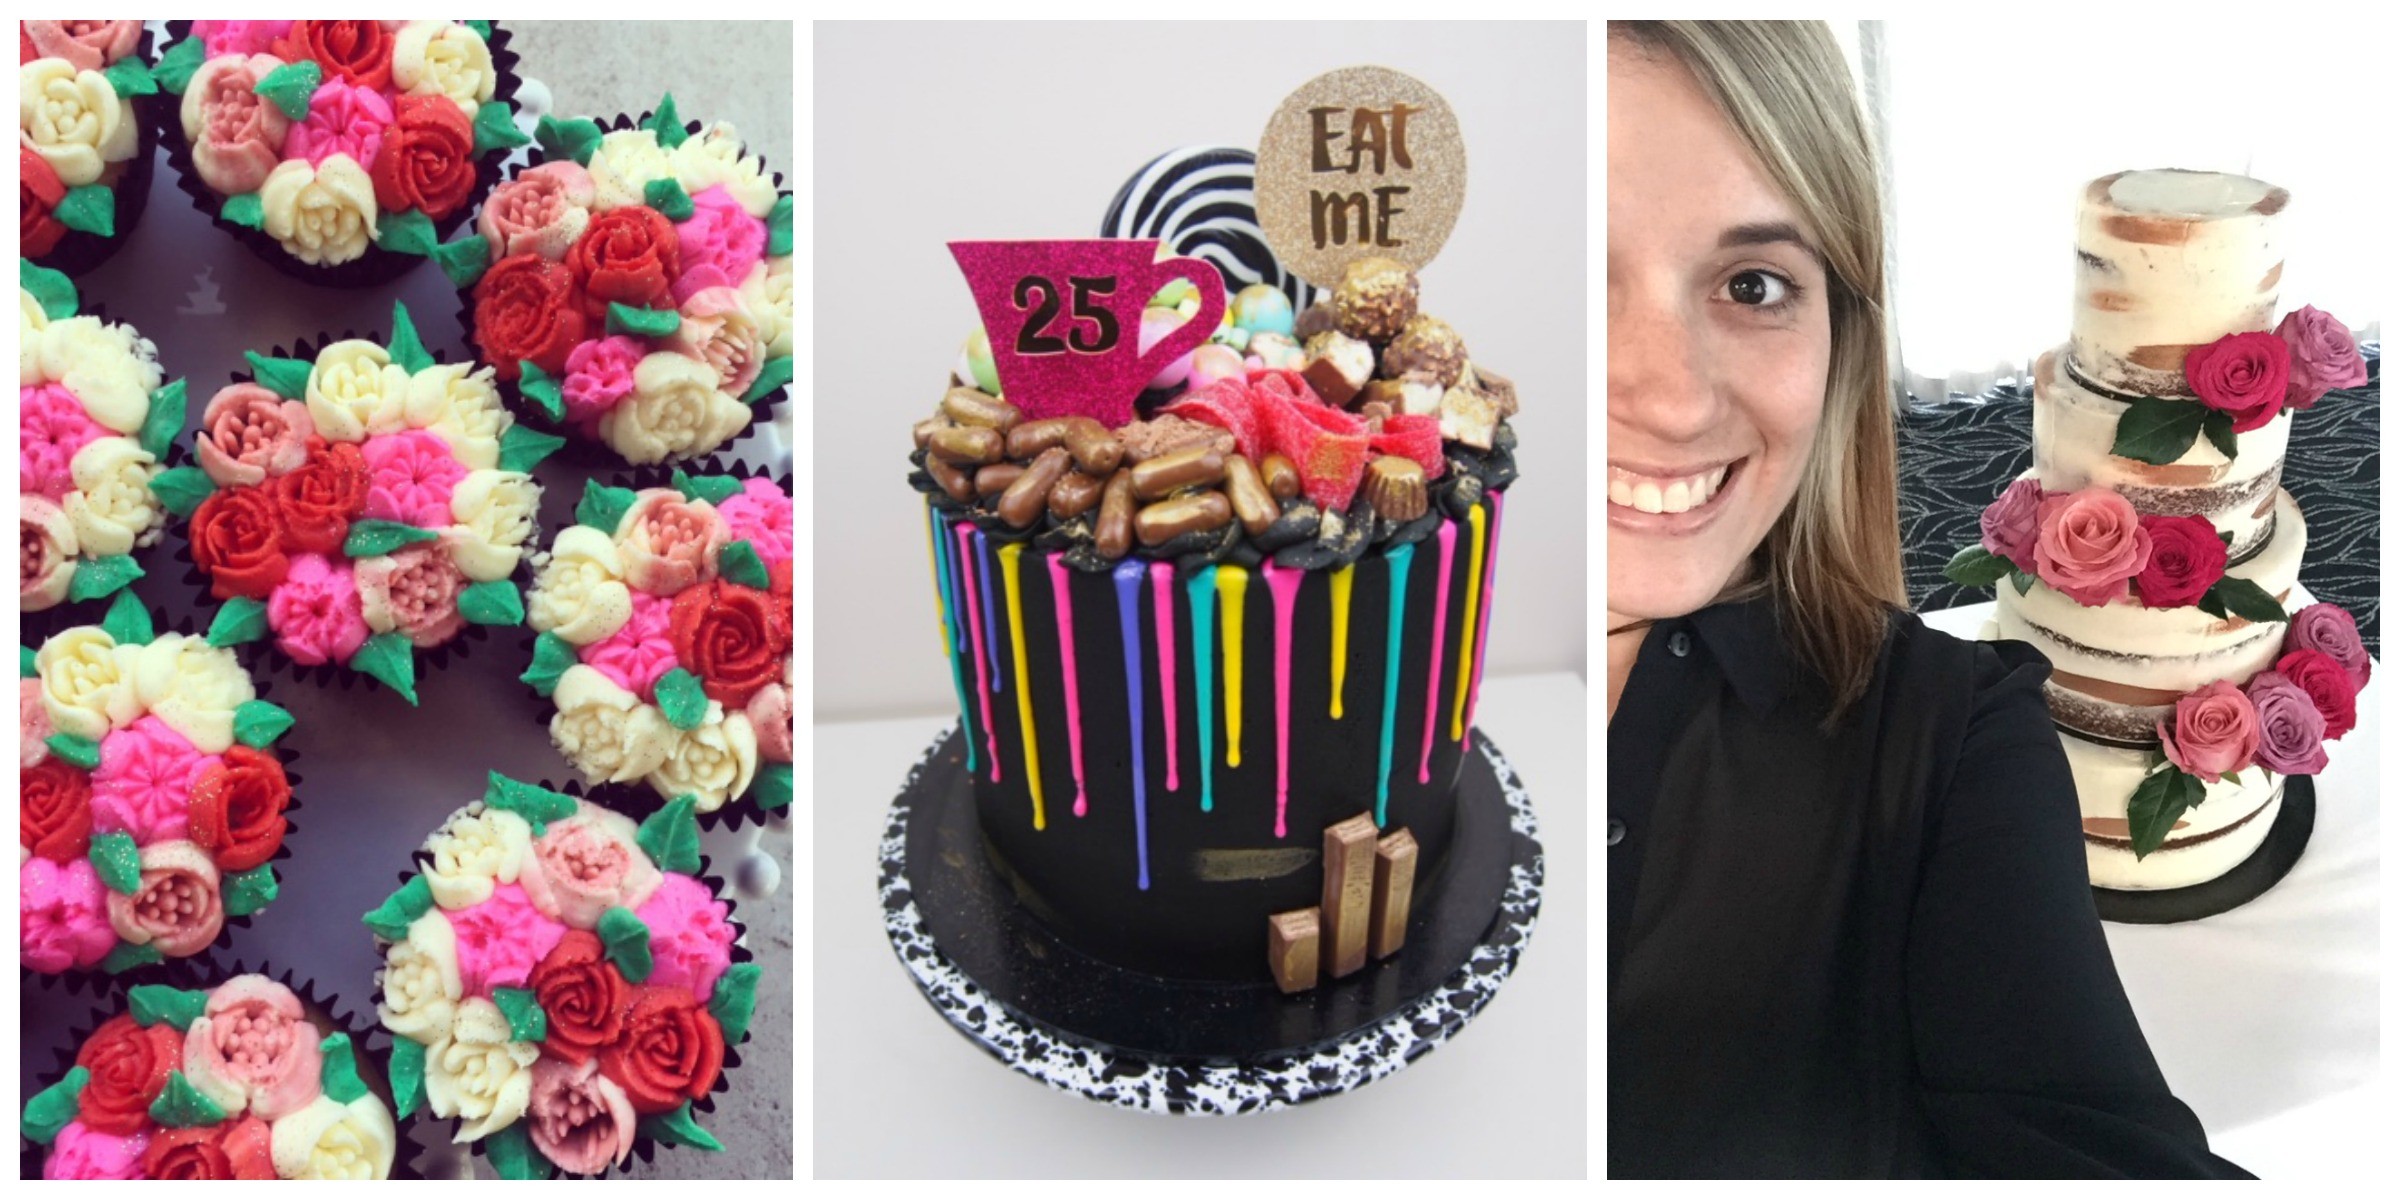 Karlee's Kupcakes: the cake and Instagram queen dominating Brisbane's celebration scene.